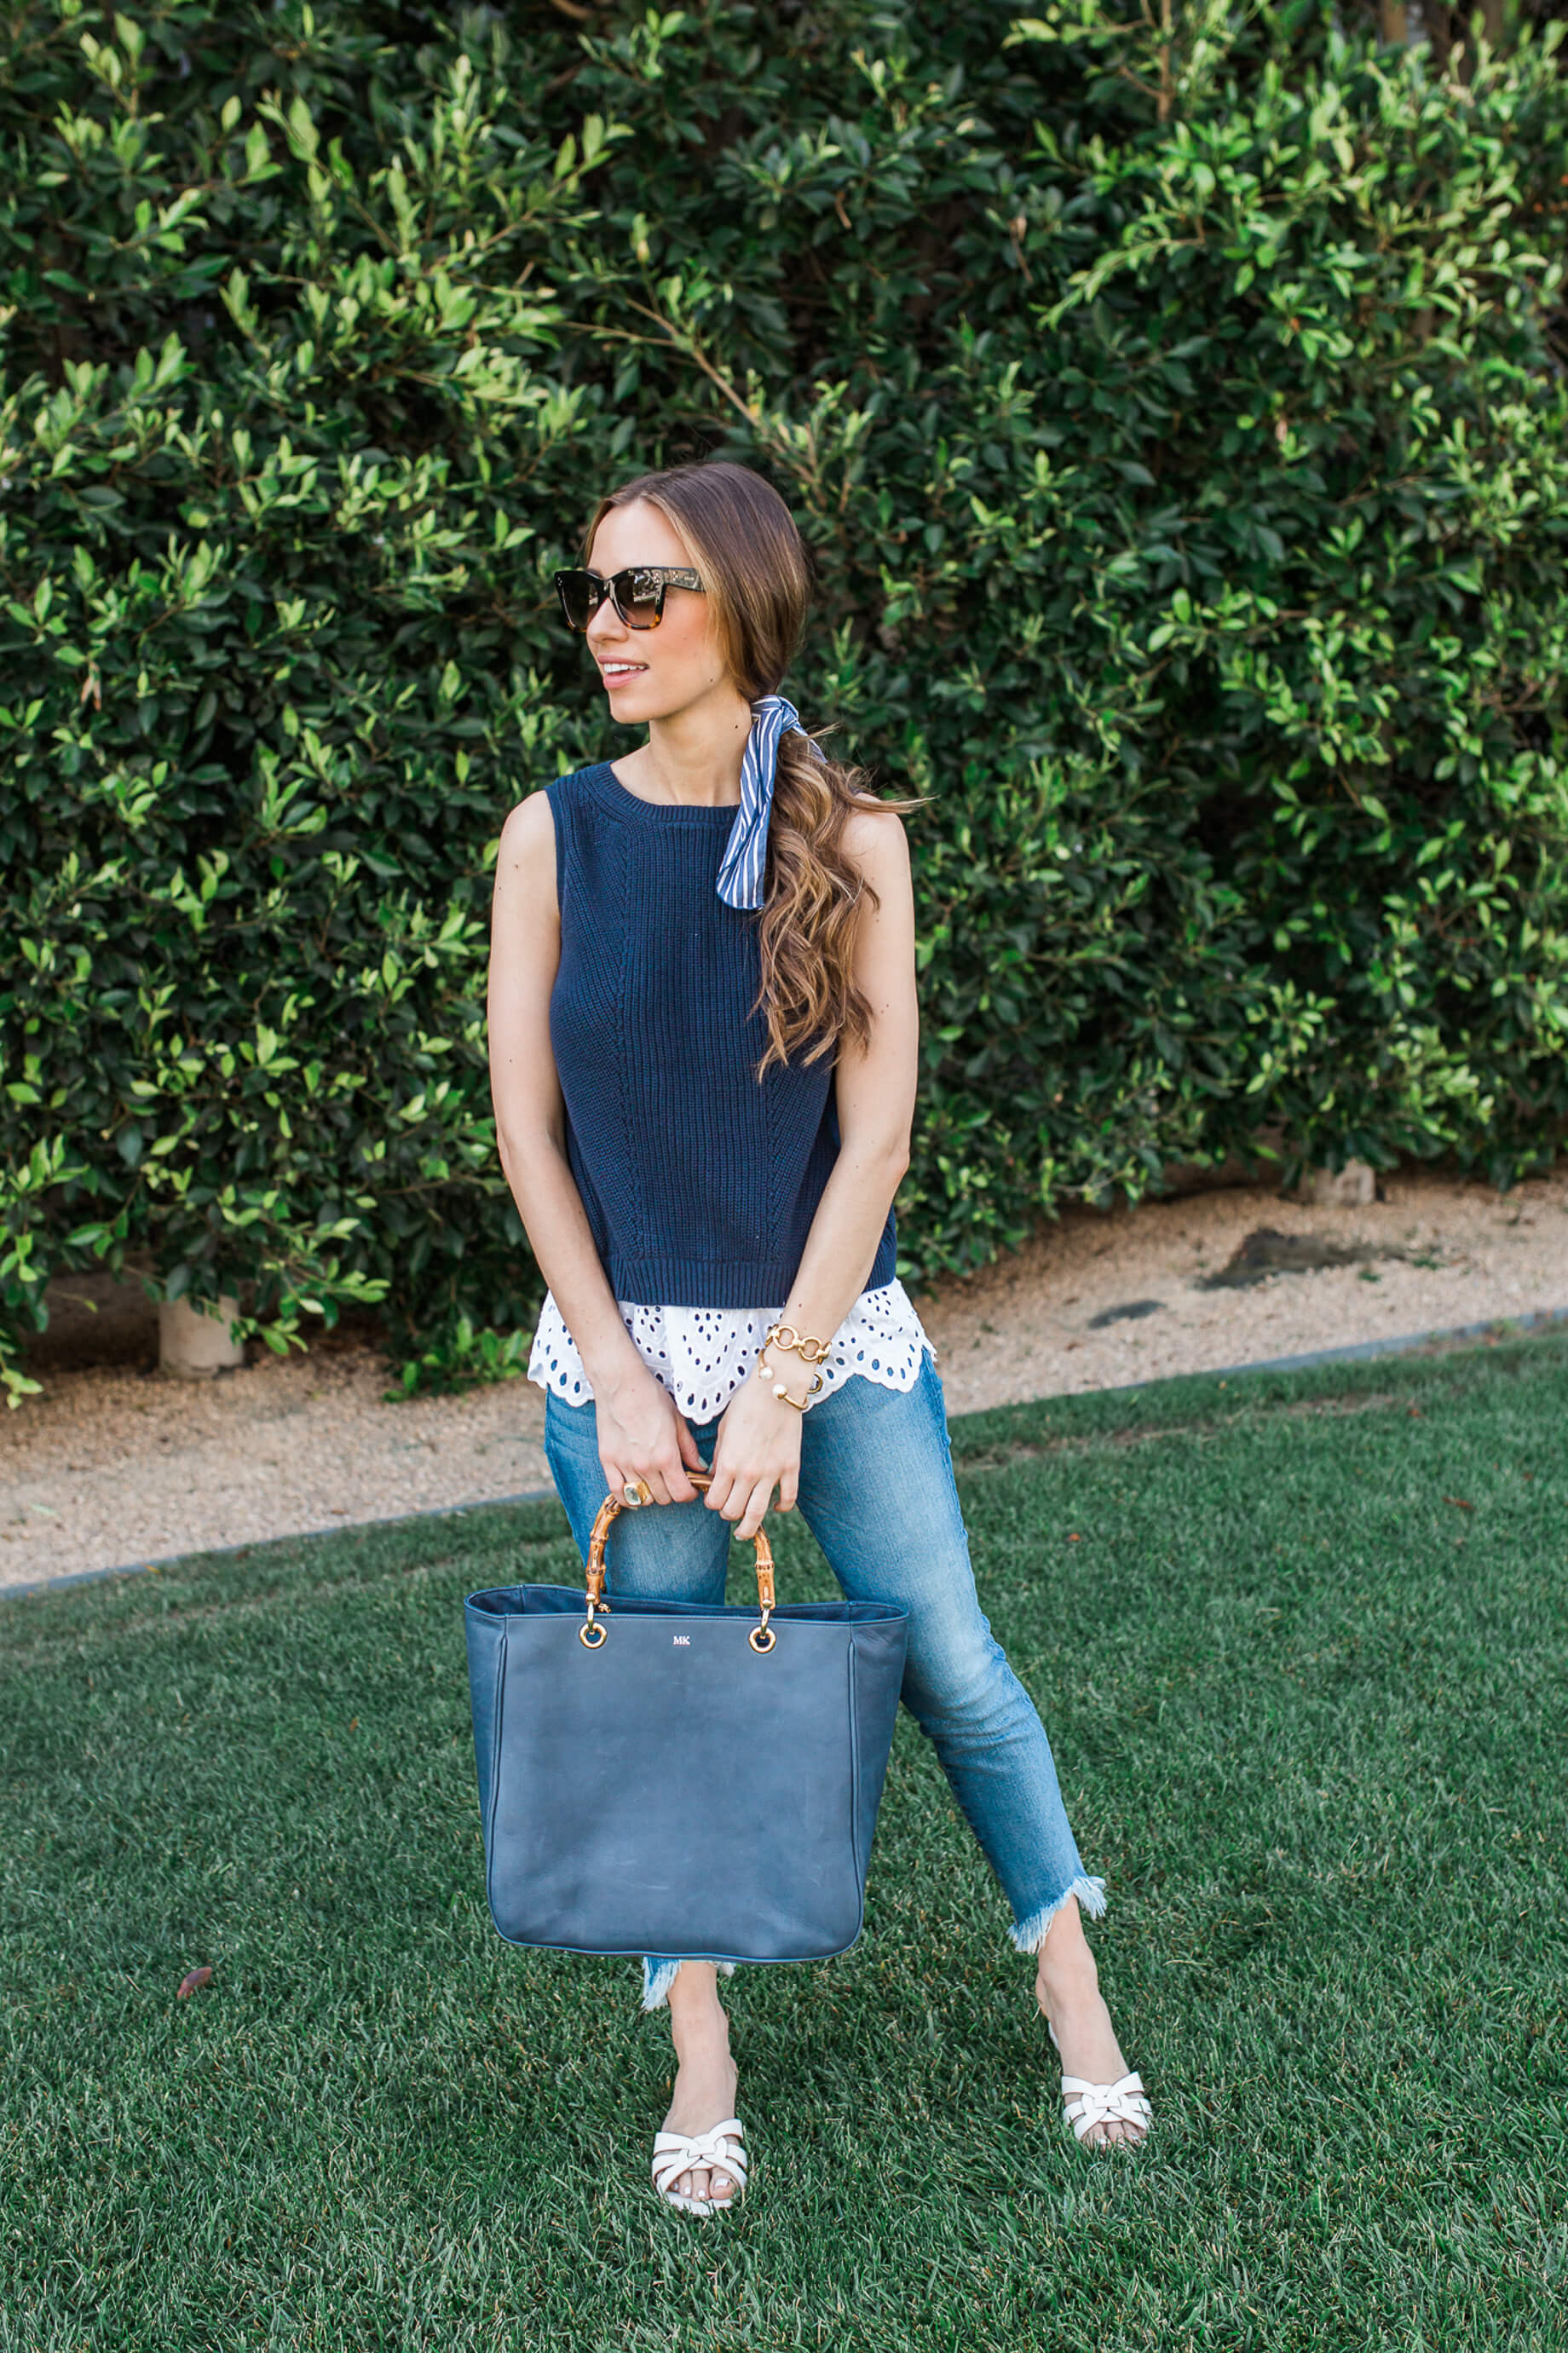 Casual Friday outfits made easy! | M Loves M @marmar